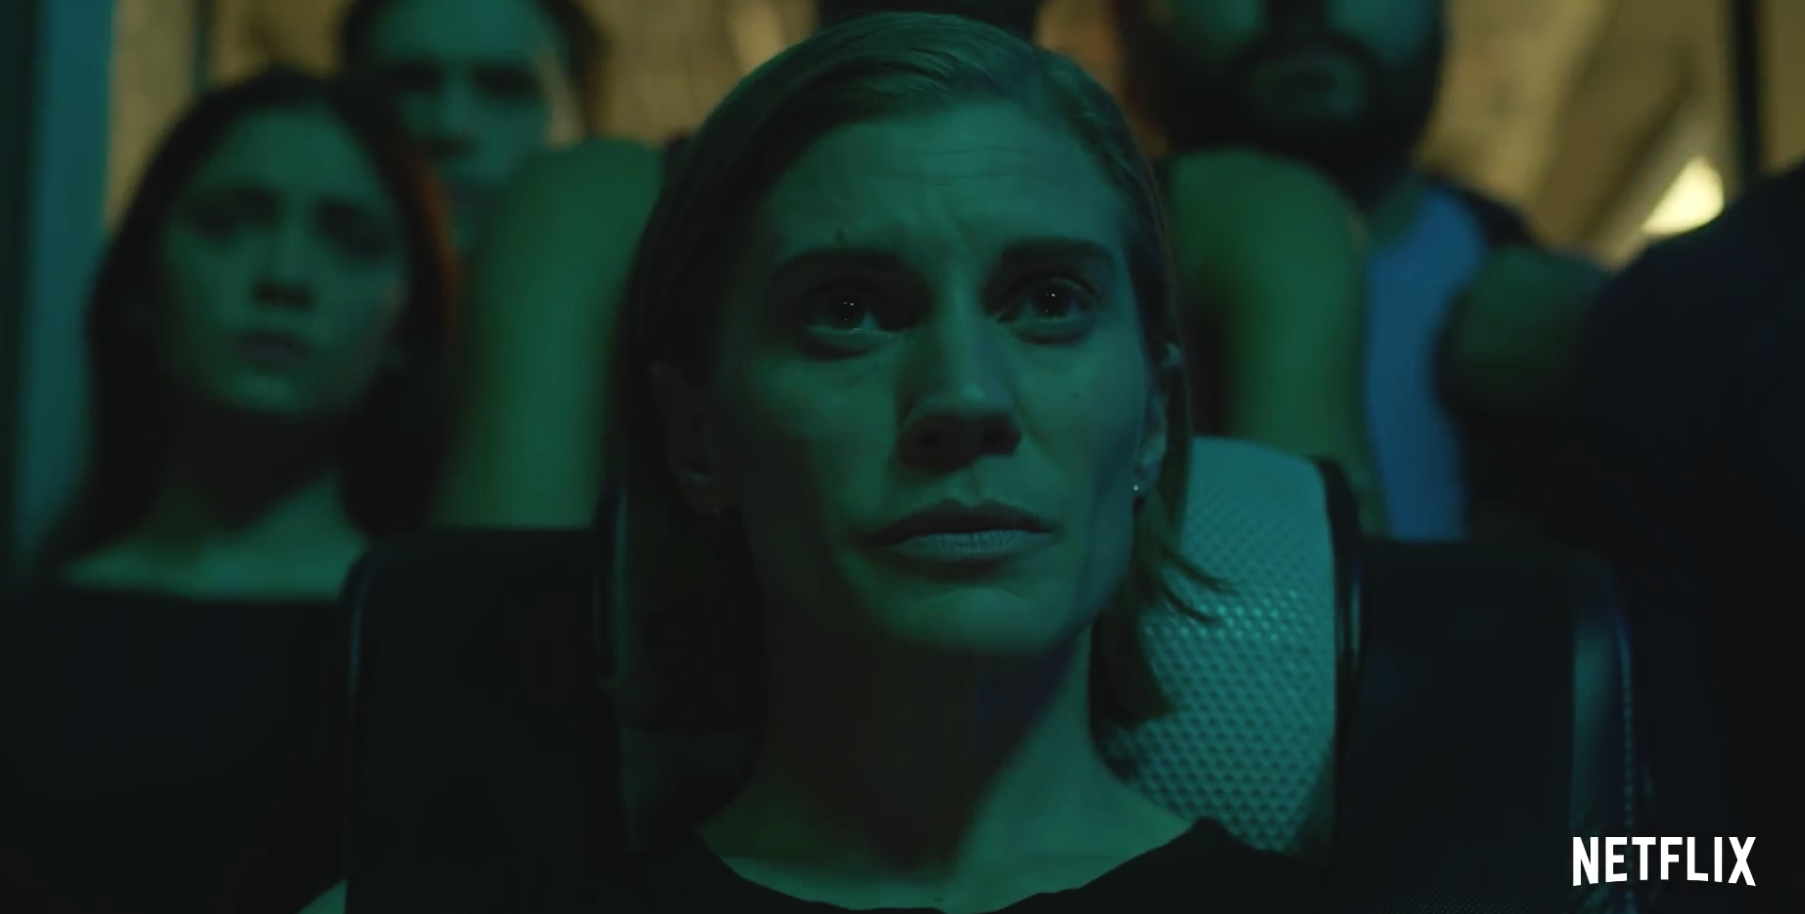 An Interstellar War Looms In The Latest Trailer For Katee Sackhoff's Sci-Fi Series Another Life